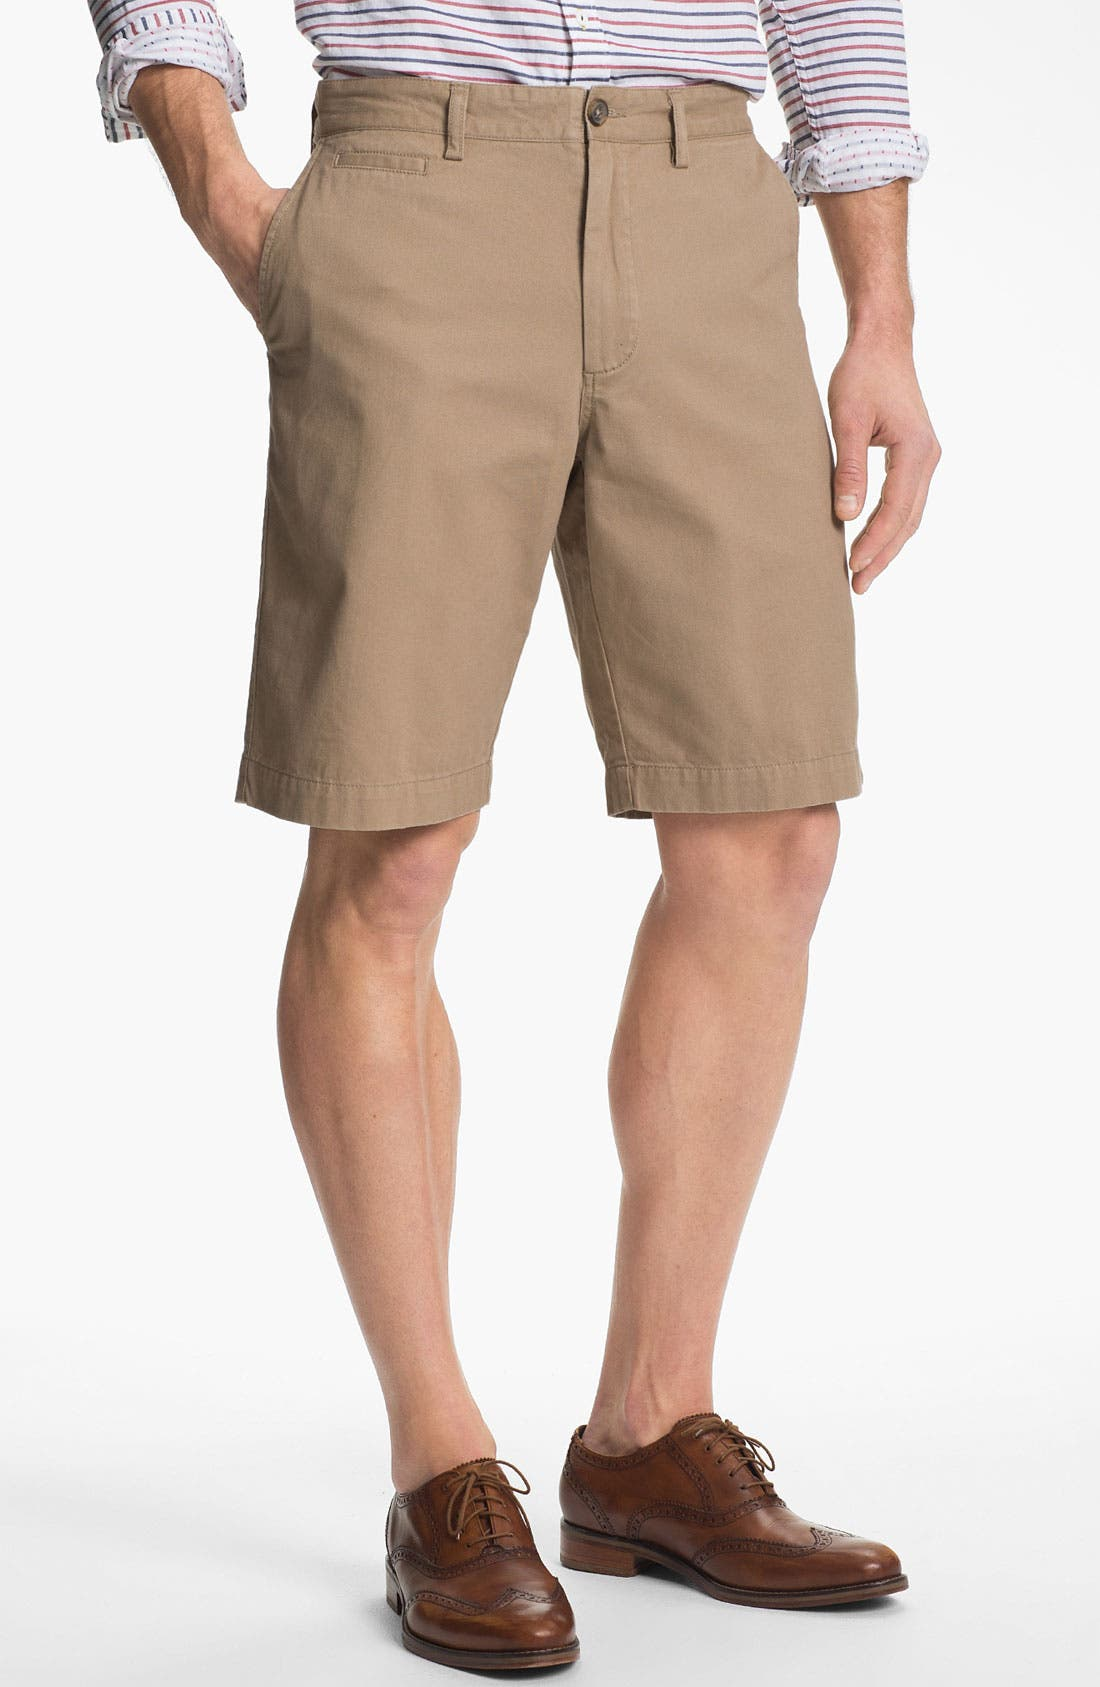 Alternate Image 1 Selected - Wallin & Bros. Flat Front Shorts